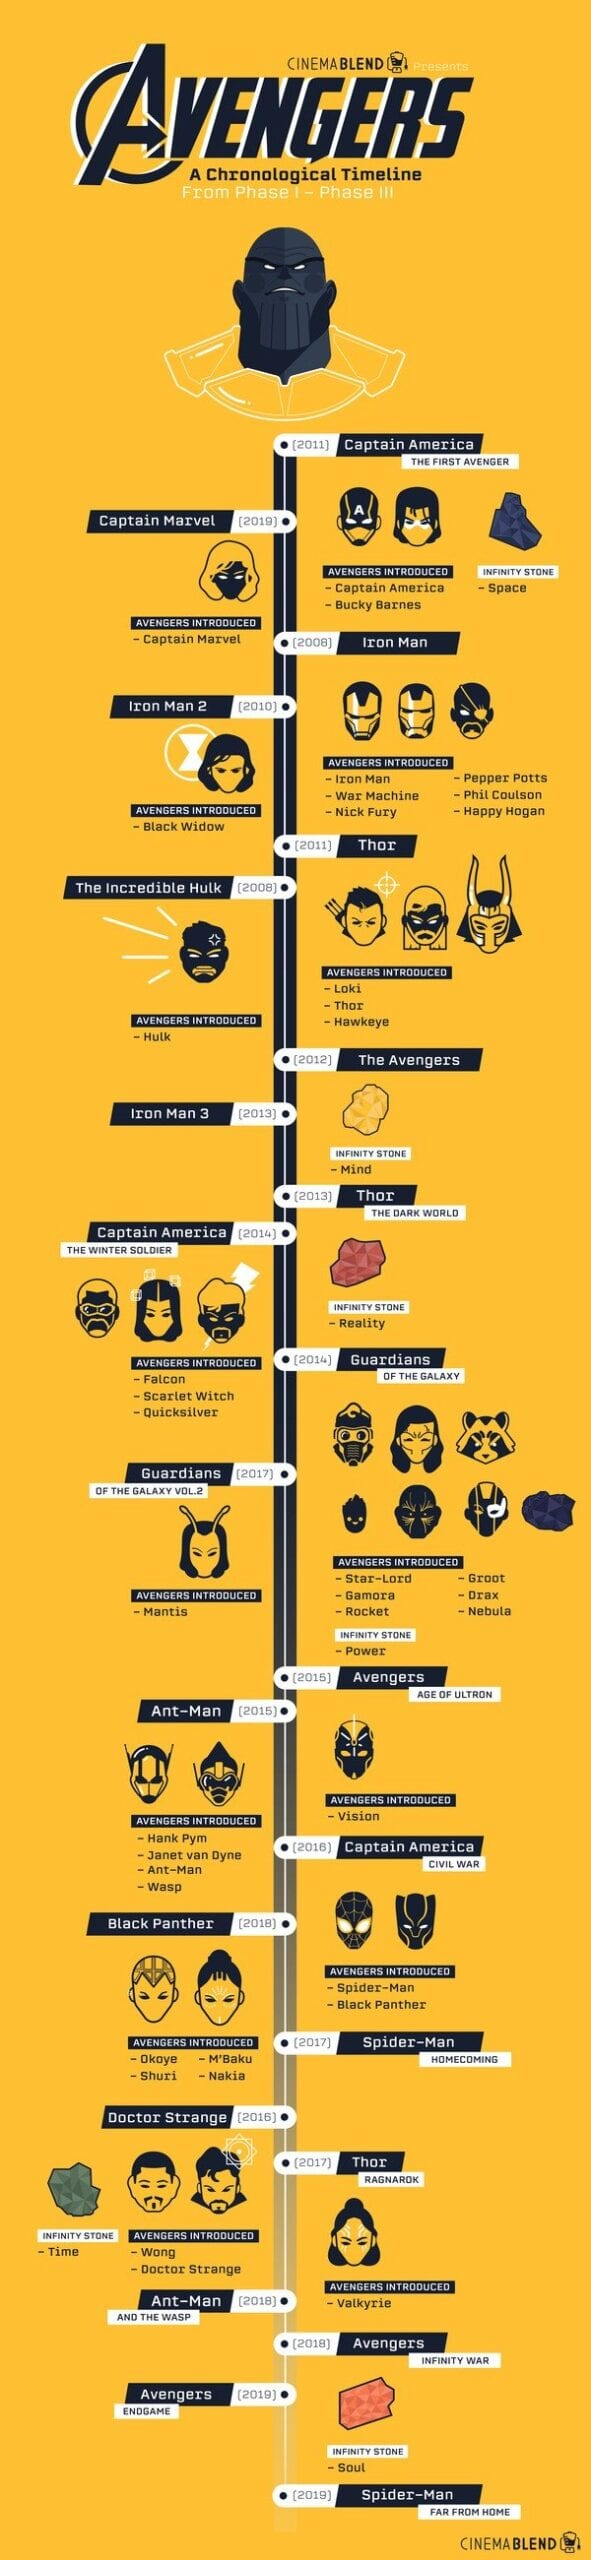 How to Watch All 23 Marvel Movies in Chronological Story Order Infographic